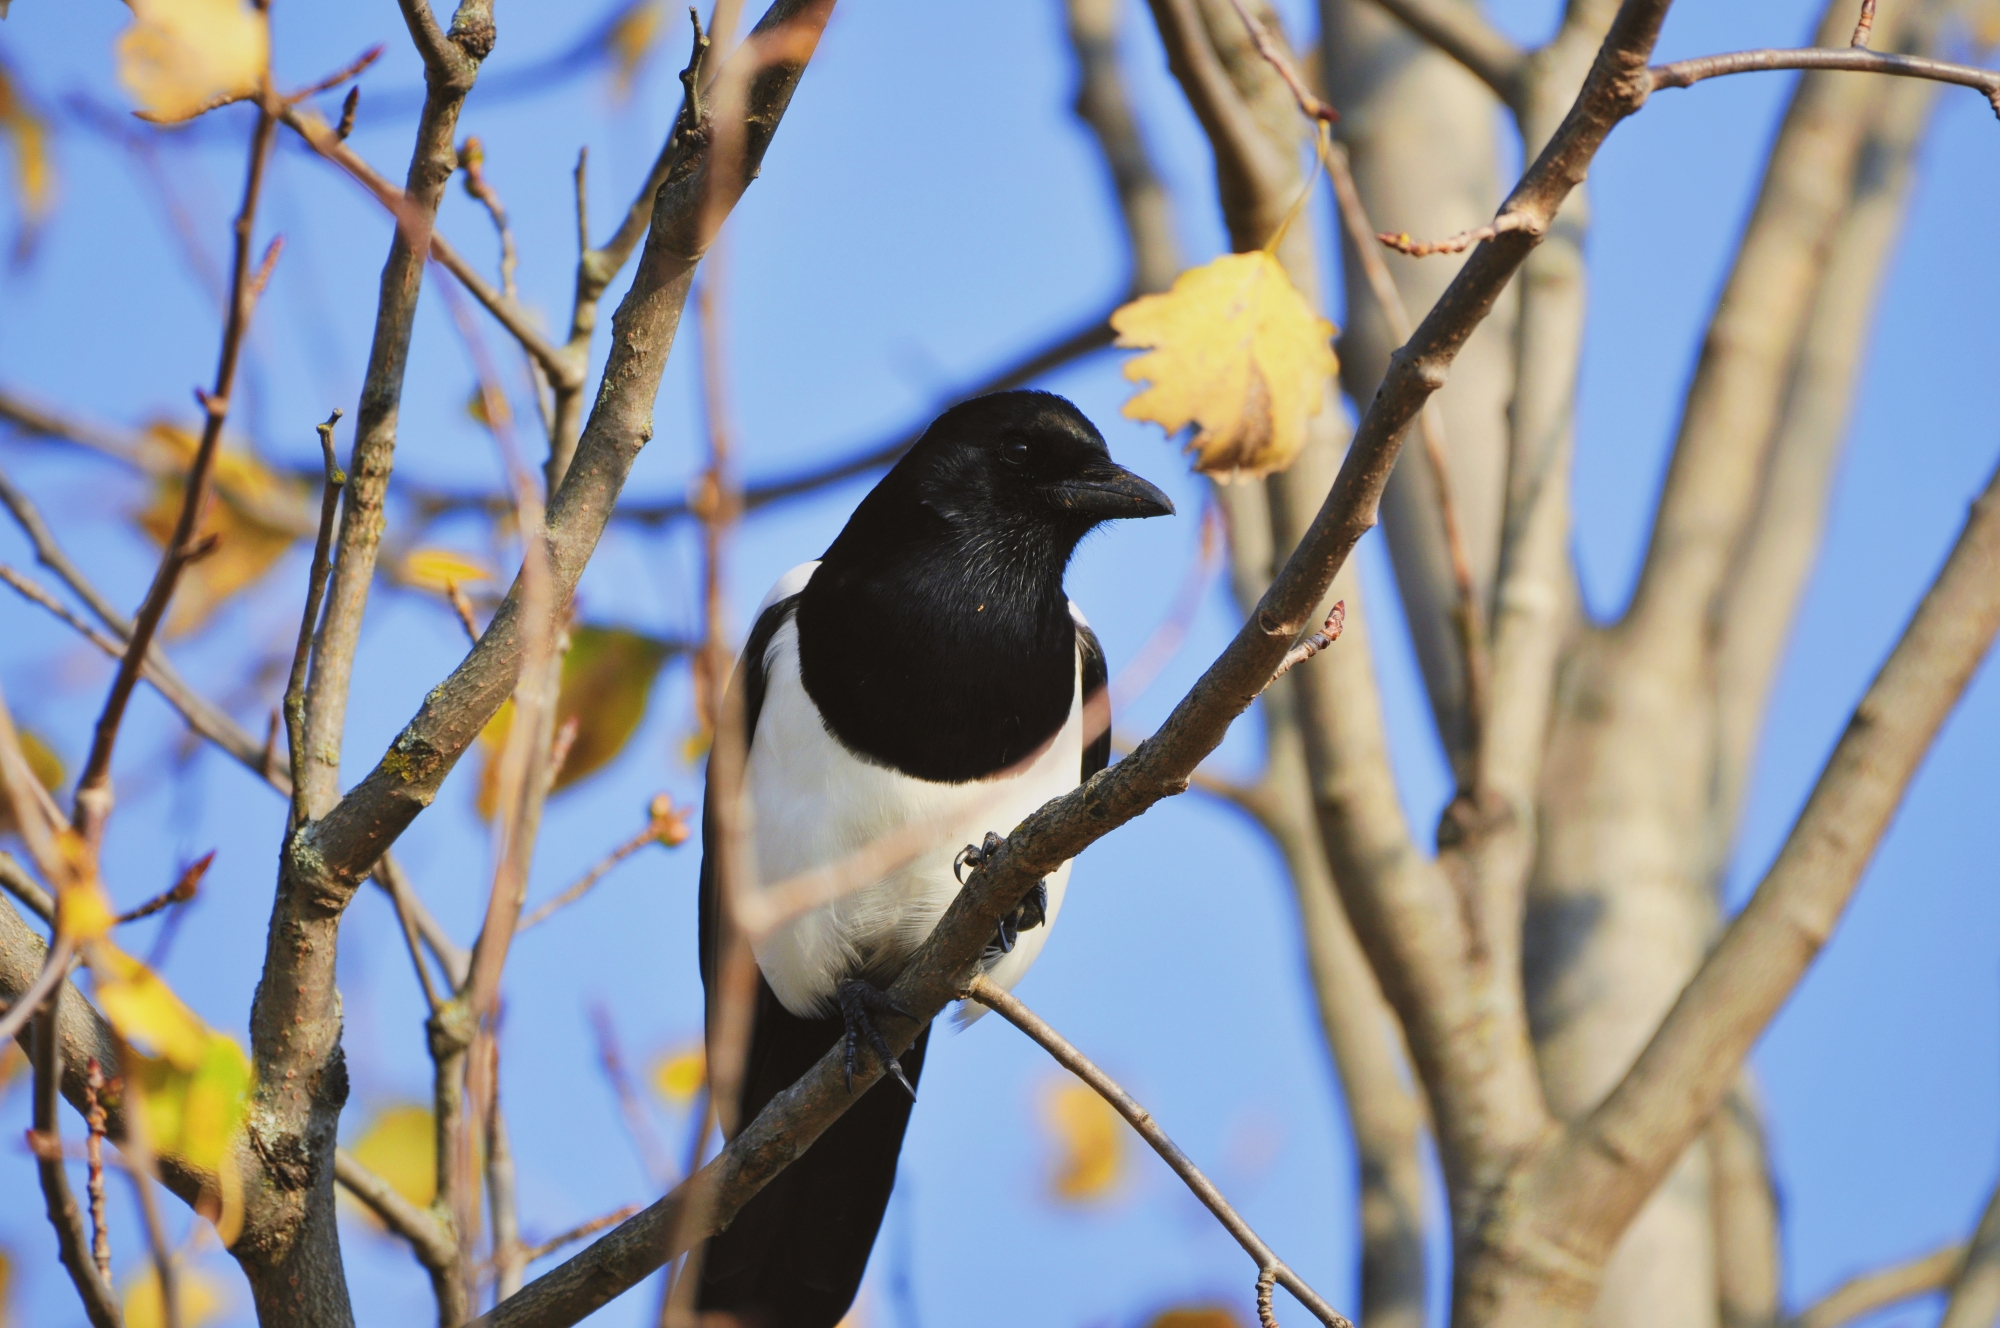 A close-up photo of a magpie in the trees